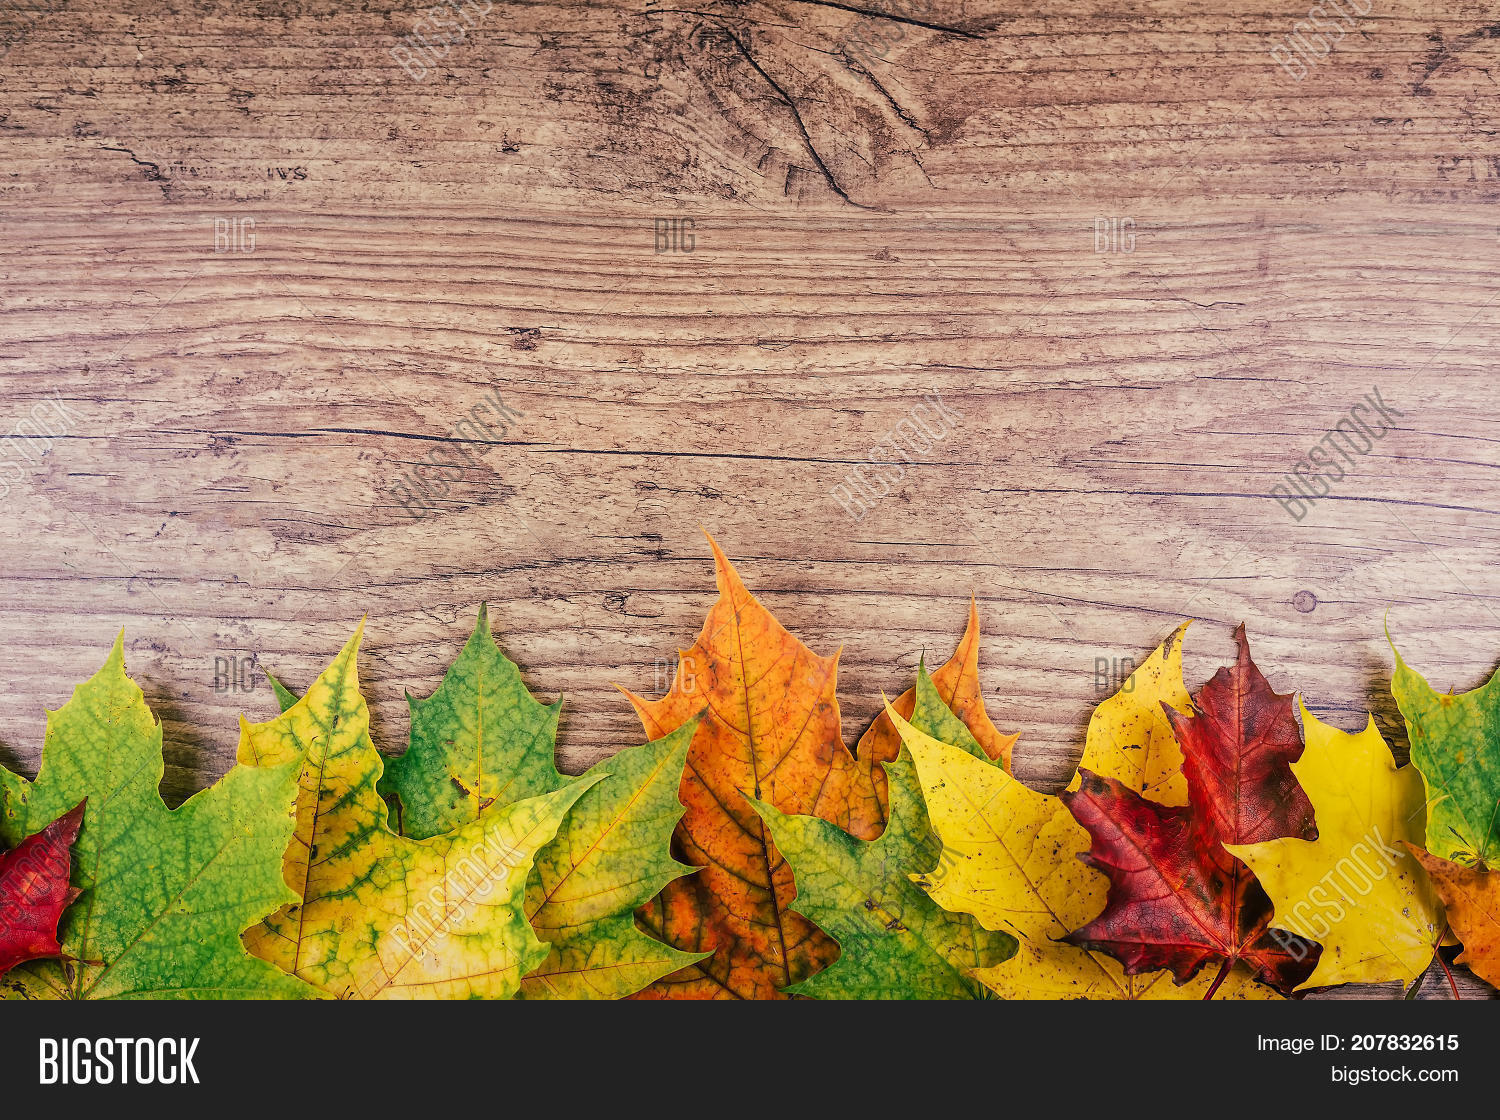 Autumn Leaf Life Cycle Background With Colorful Fall Maple Leaves On Rustic Wooden Table